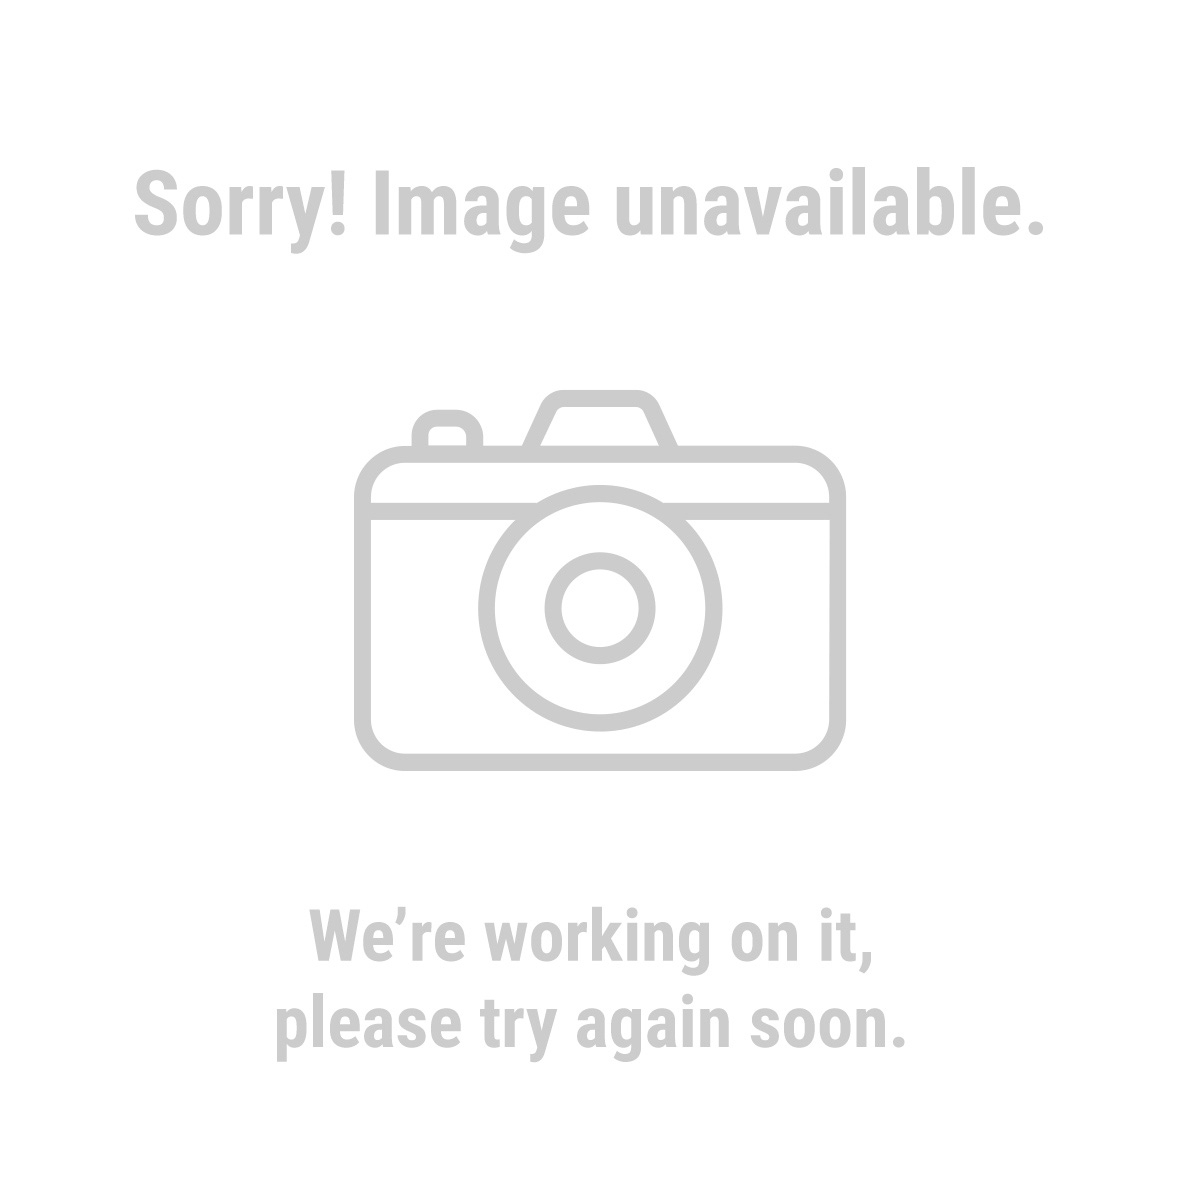 Haul-Master 60623 Two Bike Hitch Mount Bike Rack